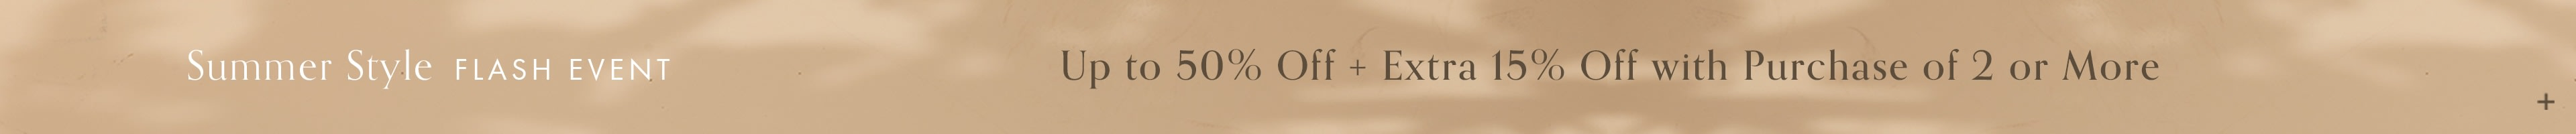 Summer Accessories Style Event - Up to 50% Off + Extra 15% Off with Purchase of 2 or More